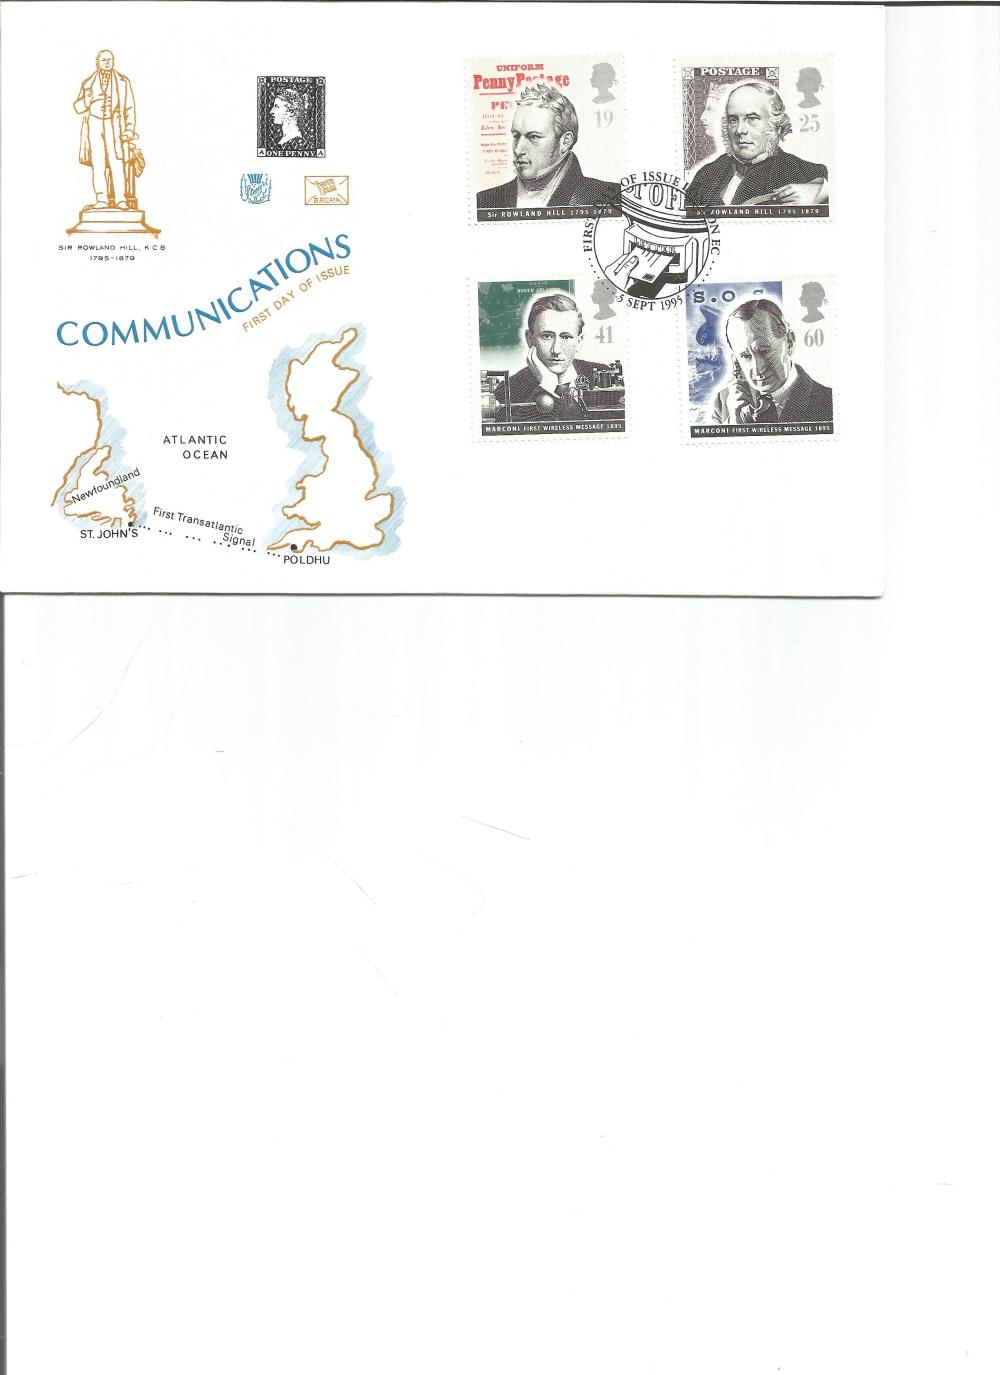 FDC Communications Sir Rowland Hill K. C. B 1795-1879 c/w set of four commemorative stamps PM